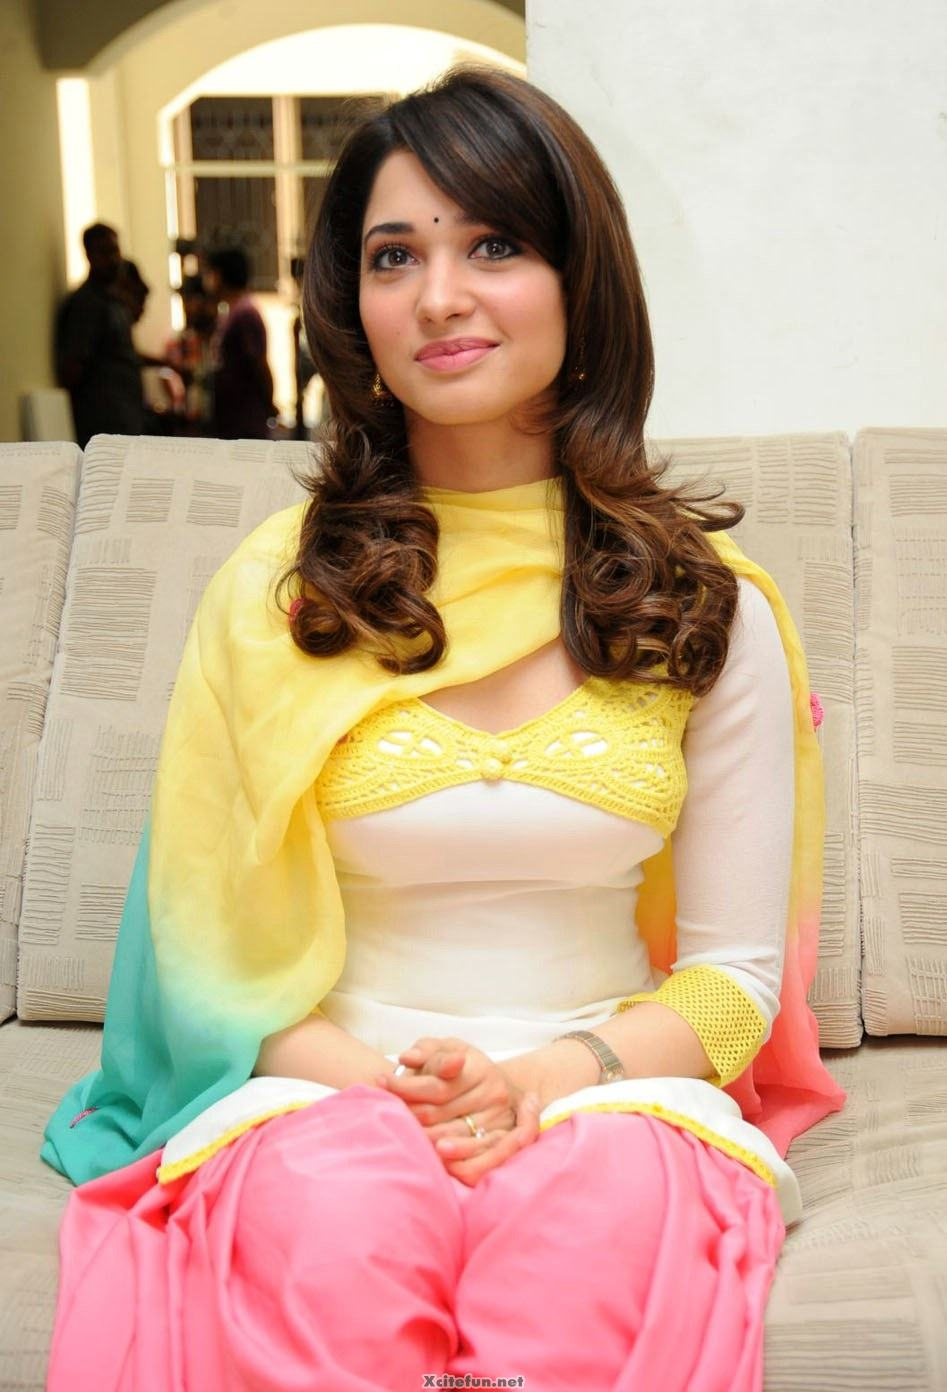 Cute And Naughty Indian Actress Tamanna - Xcitefunnet-2302